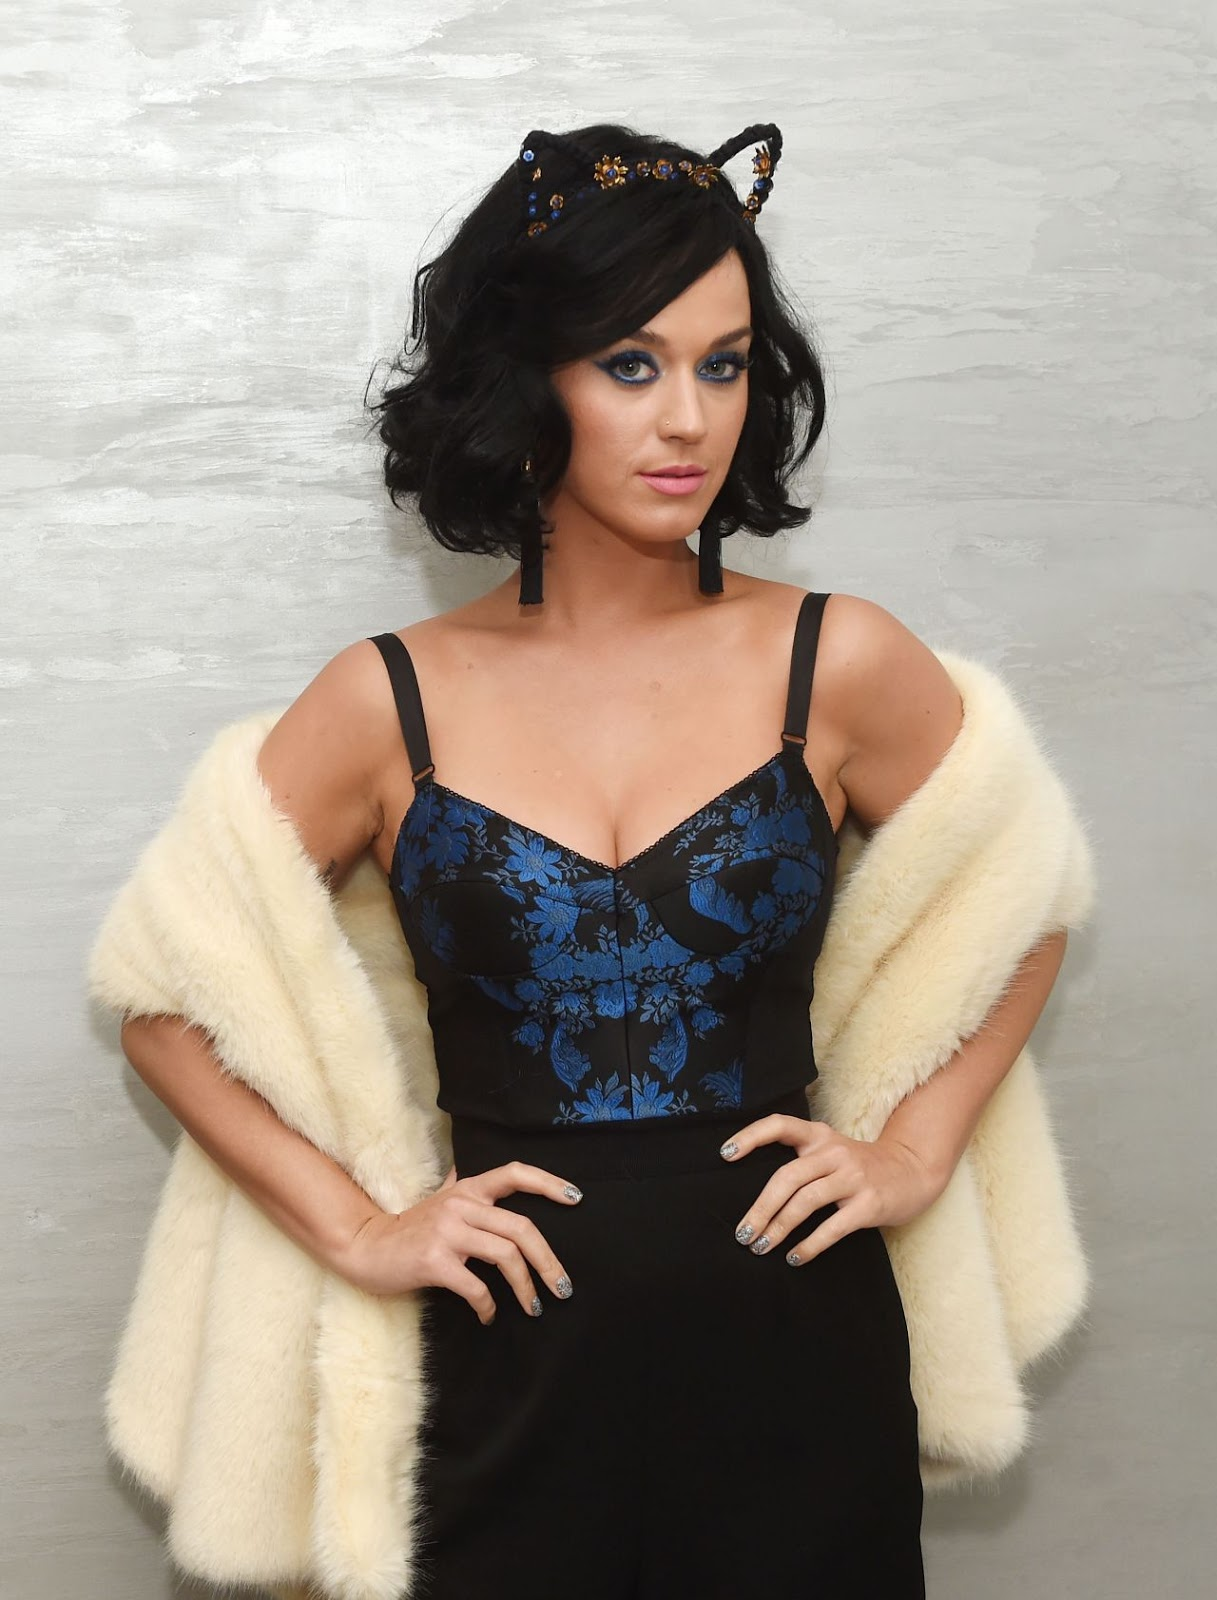 Katy Perry bares cleavage at the Katy Kat launch in NY